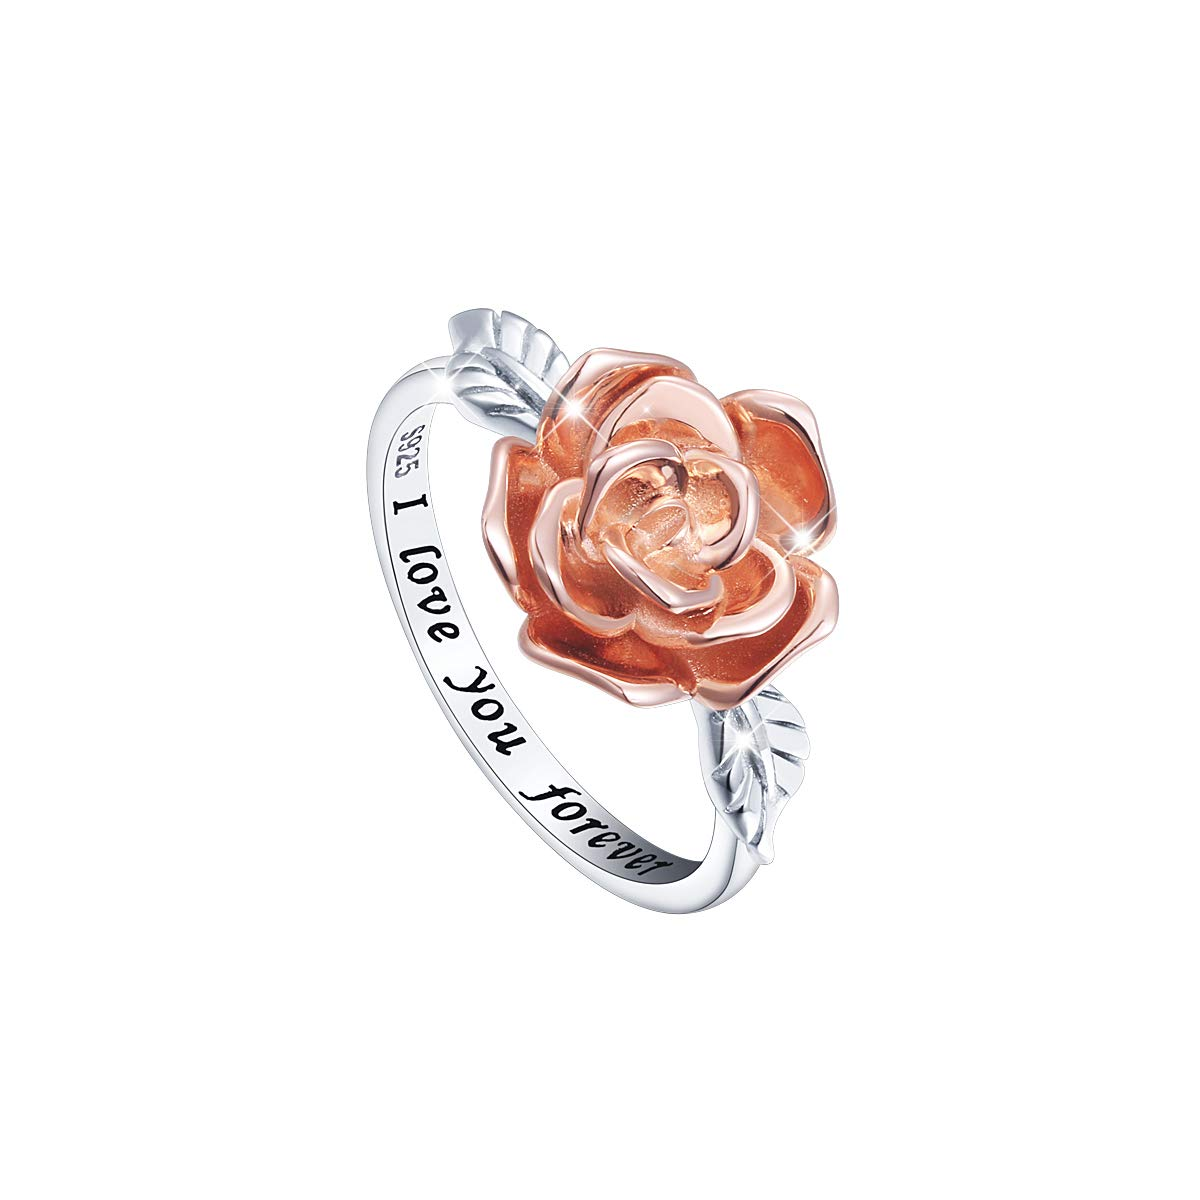 DAOCHONG S925 Sterling Silver Rose Flower Love Jewelry Bands Ring for Women Size 7